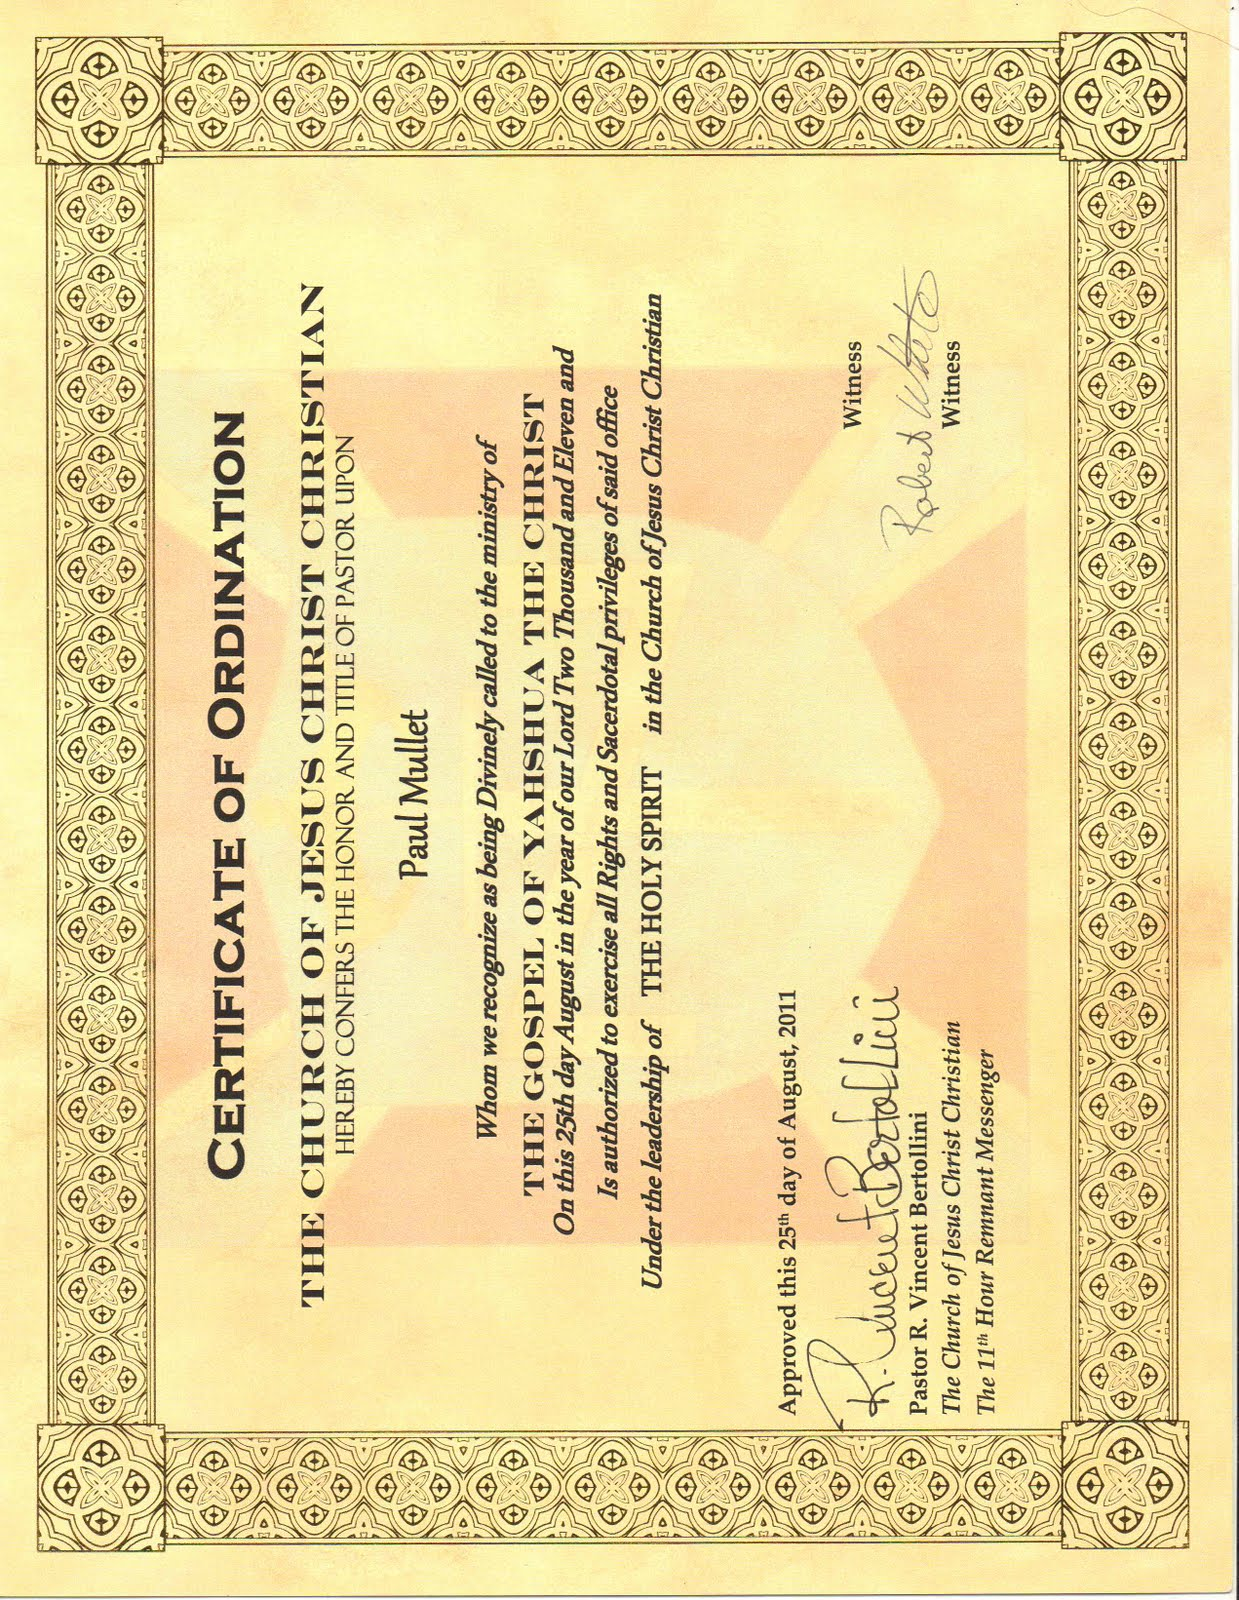 Ordination certificate crusaders for yahweh it is a great honor that i announce that i have been ordained into the church of jesus christ christian as a pastor i will do all i can for yahweh and my 1betcityfo Image collections